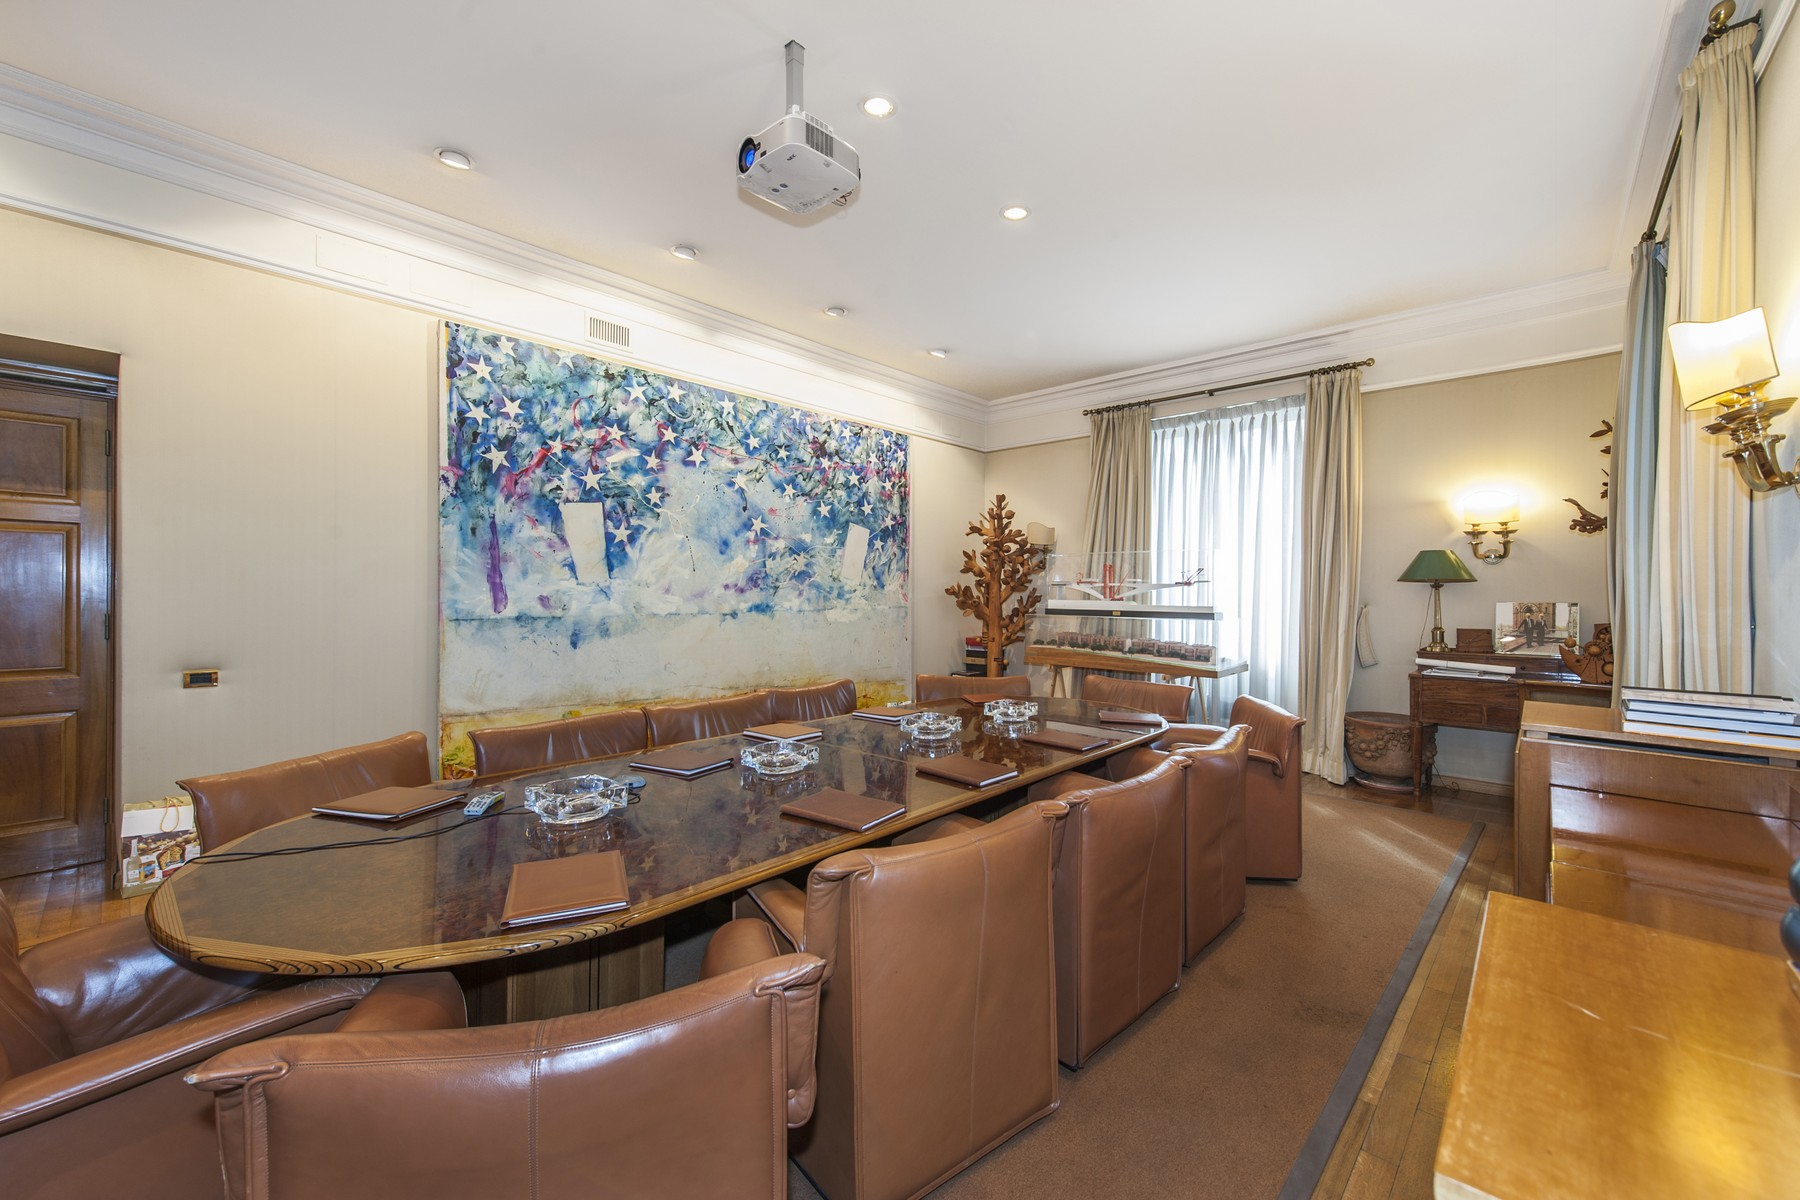 Apartment for Rent at Executive Offices in the Parioli neighbourhood Via Antonio Stoppani Rome, Rome 00197 Italy